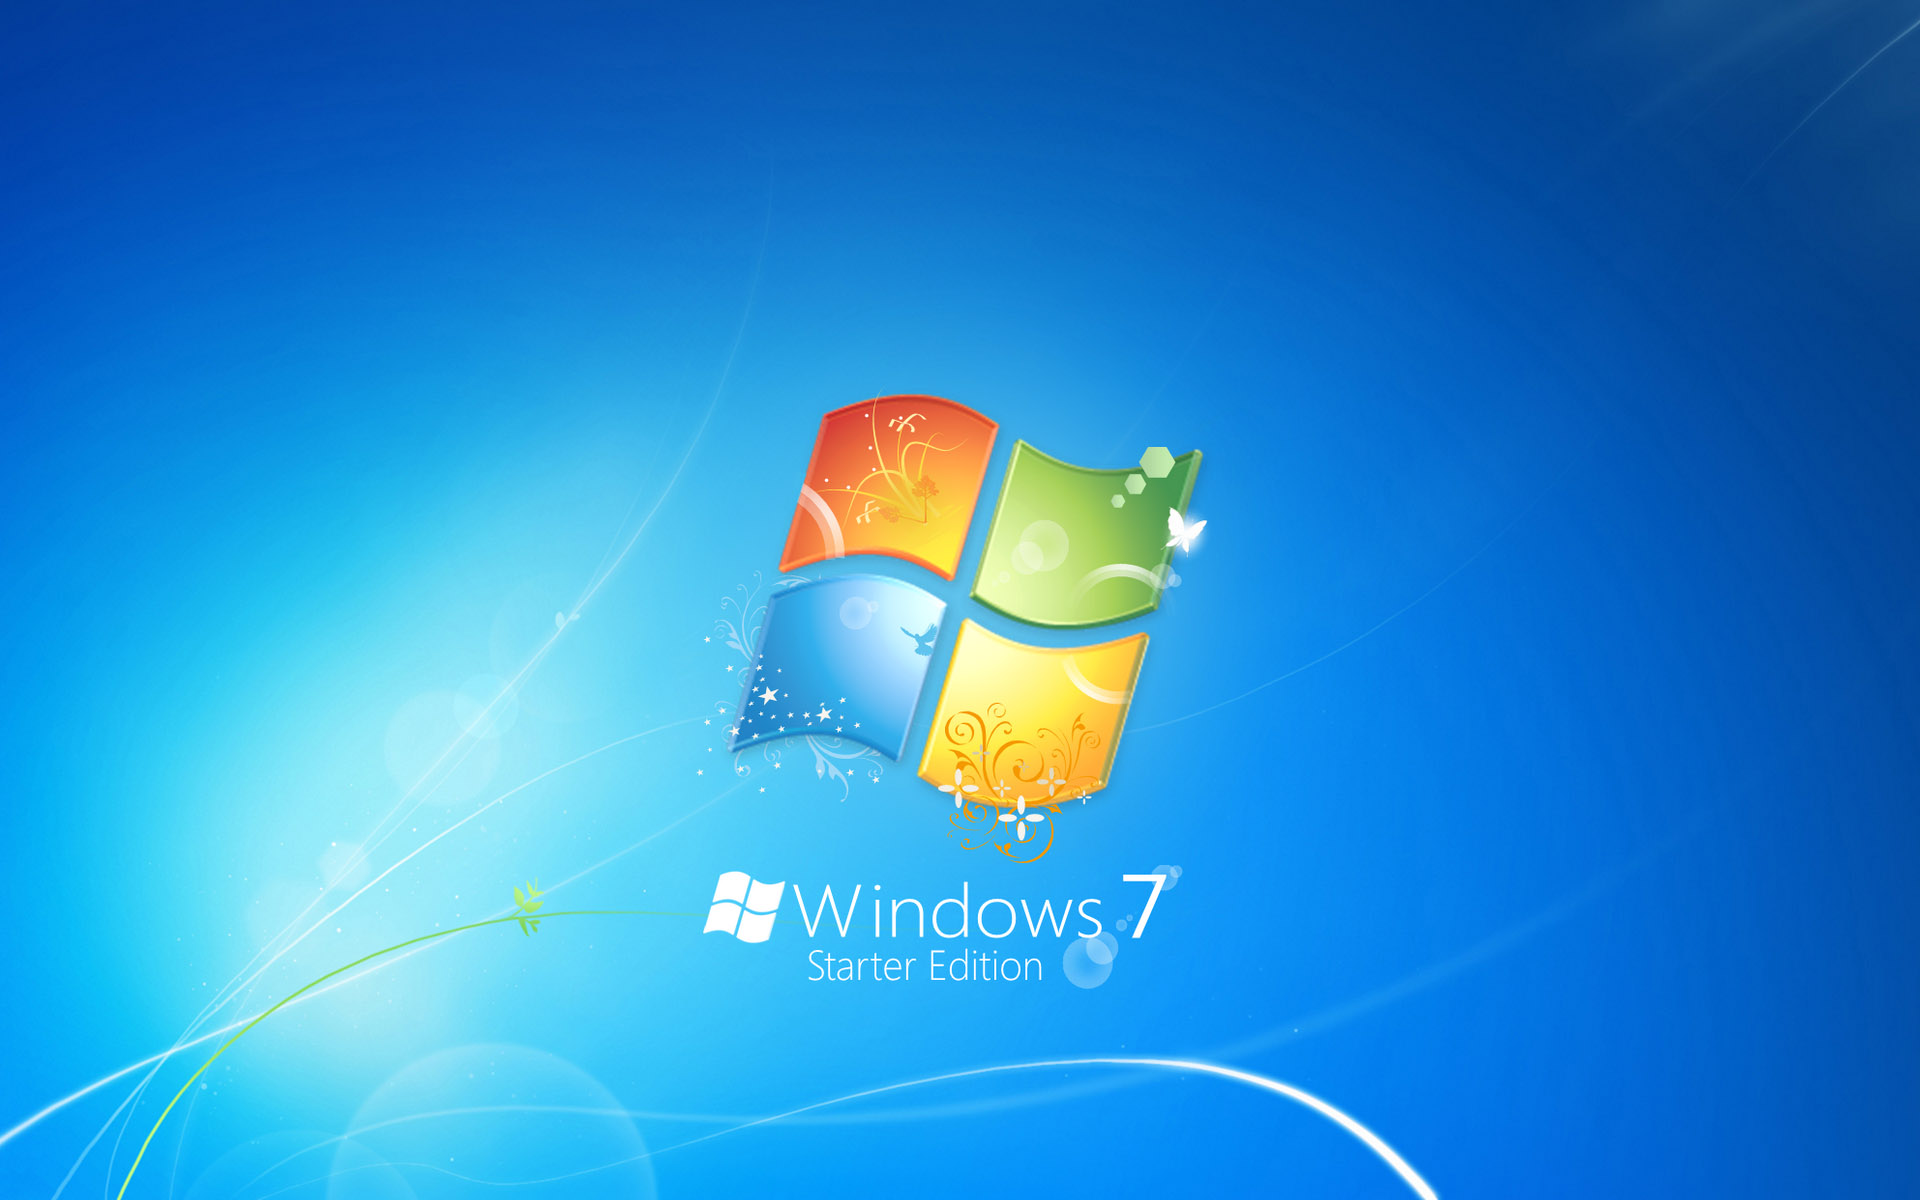 Windows 7 Starter Edition